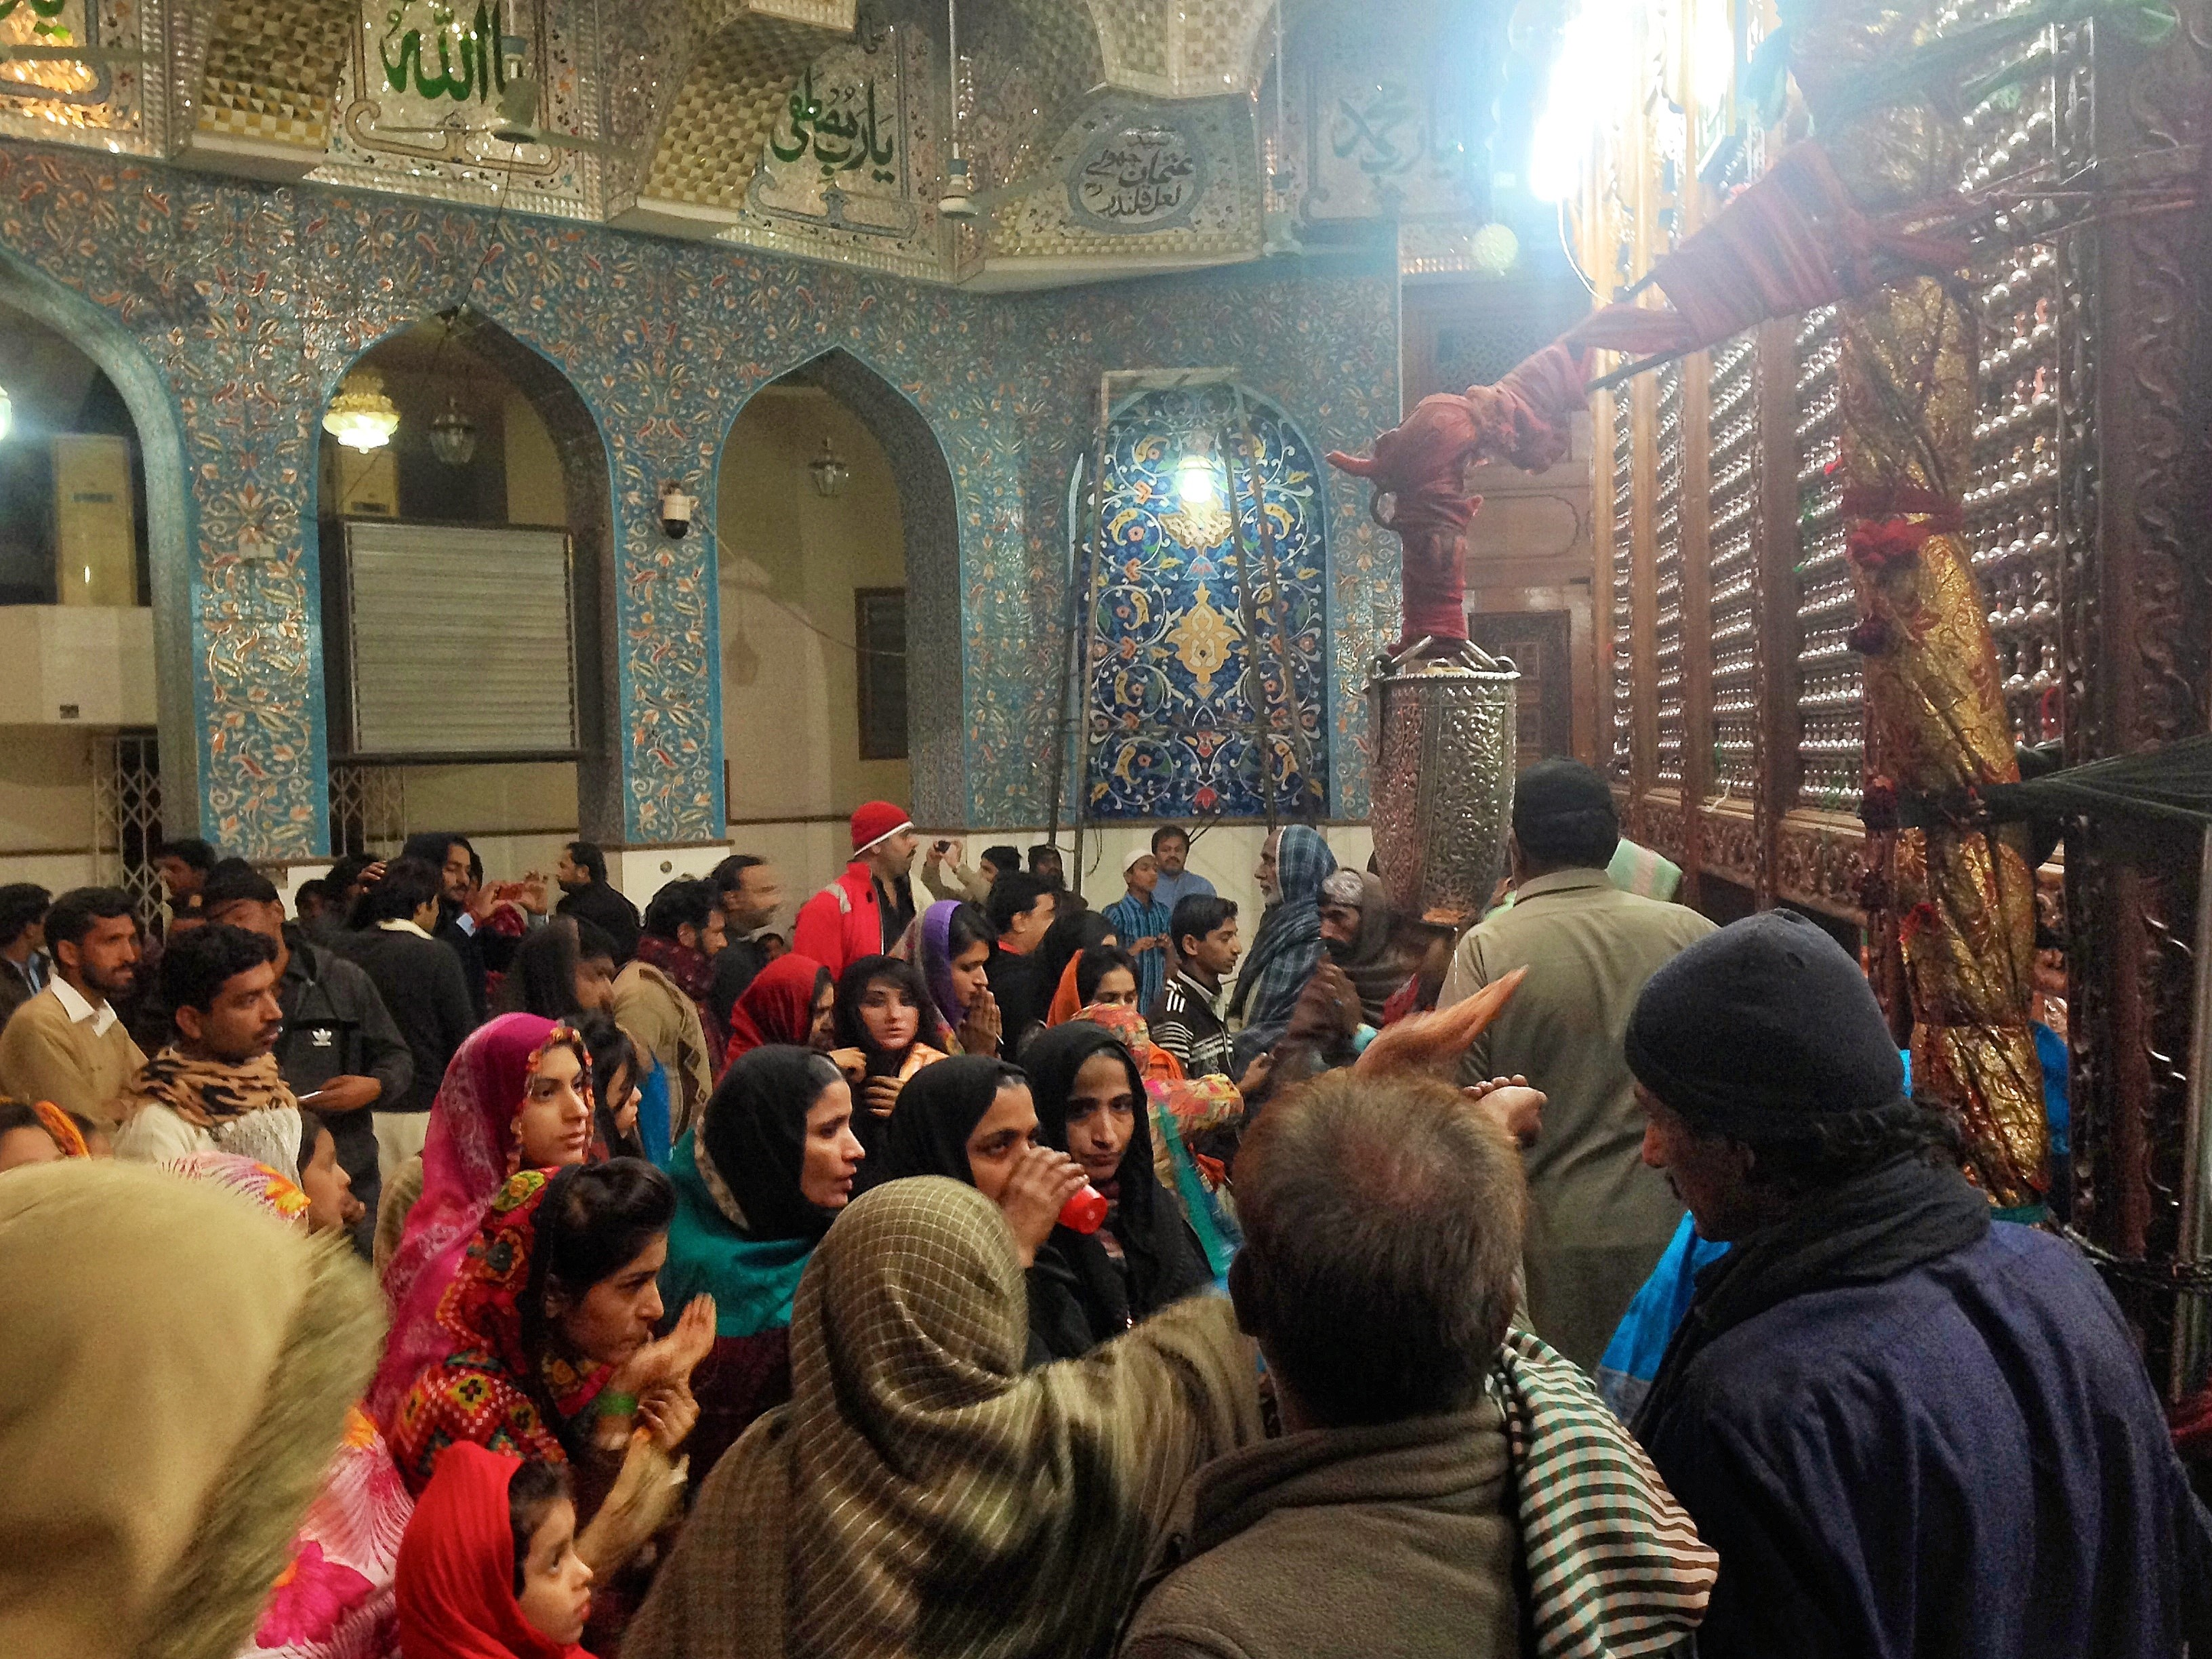 Female worshippers reach for the rose water dispenser, tied to the grave of Shahbaz Qalandar. A visit to the Shrine acts as a form of both bodily and spiritual cleansing.